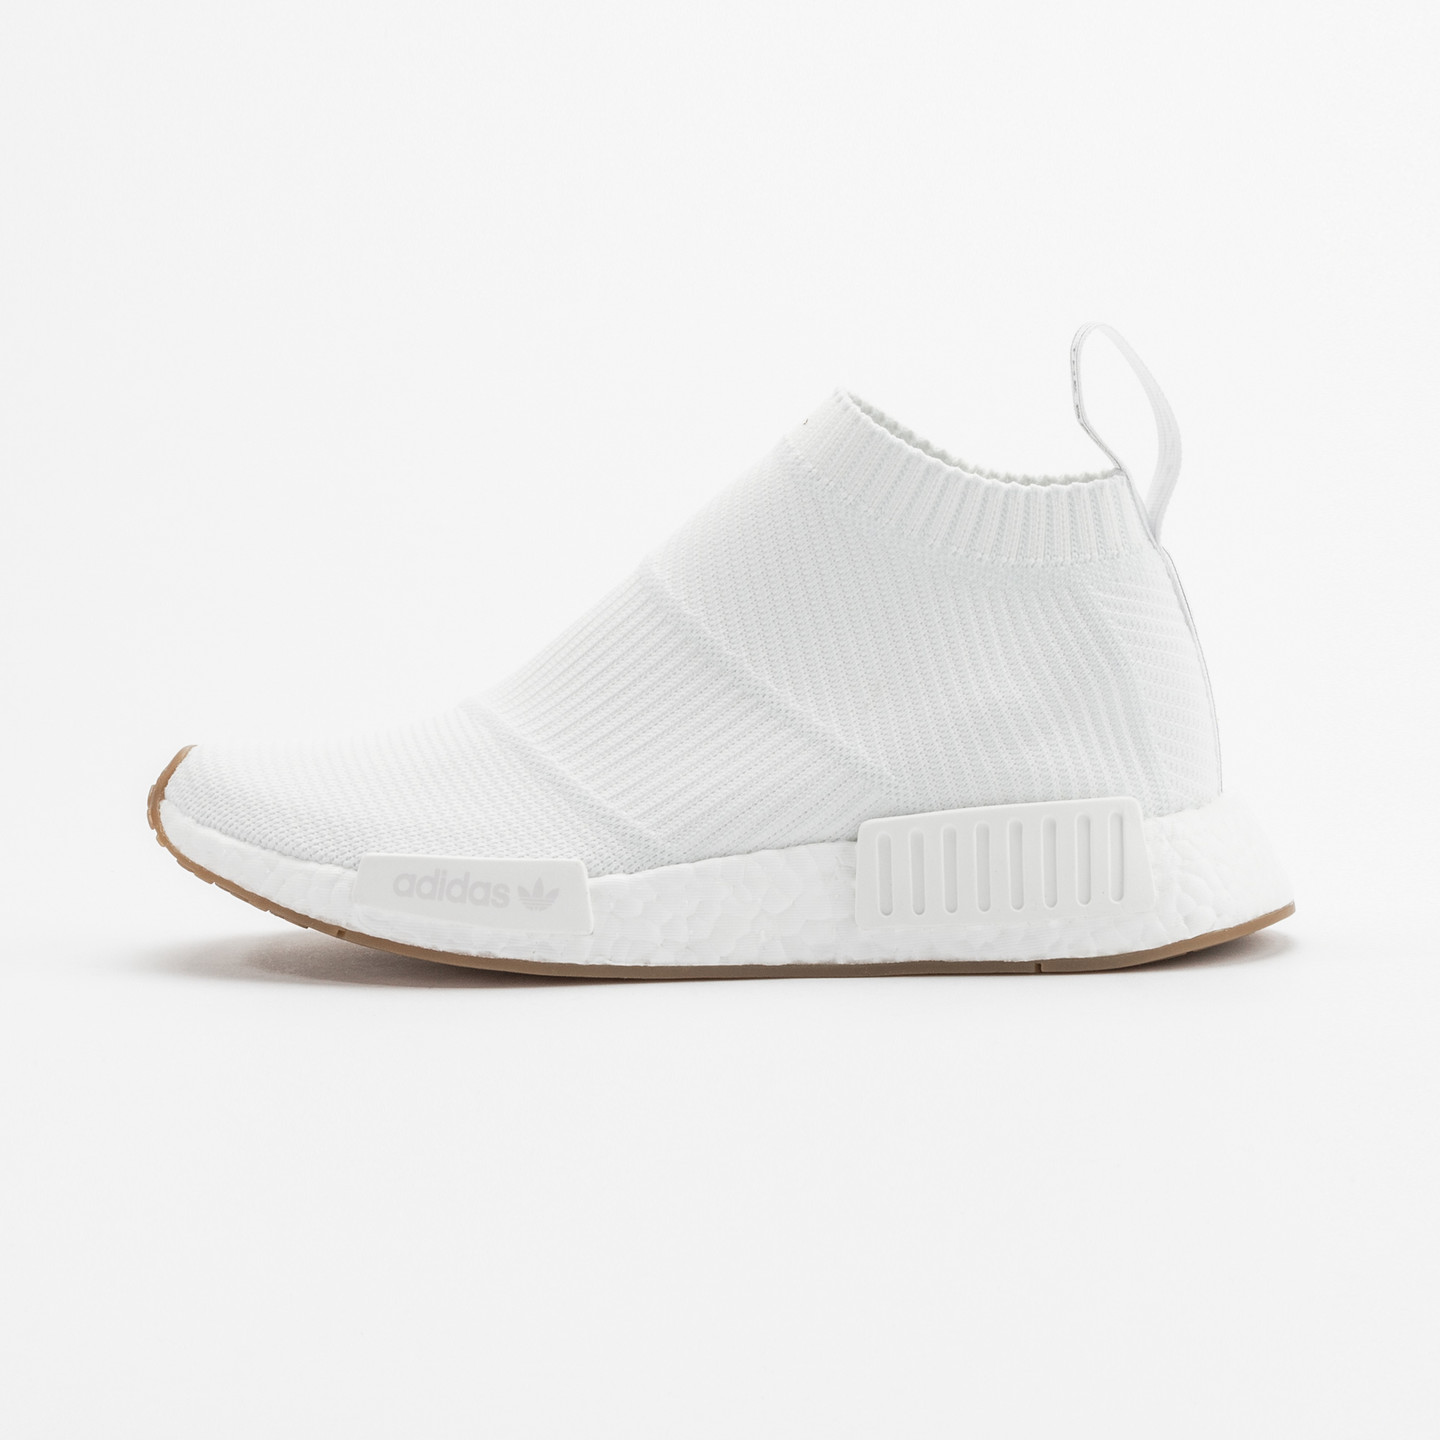 Adidas NMD CS1 City Sock Boost Primeknit Running White / Gum BA7208-43.33